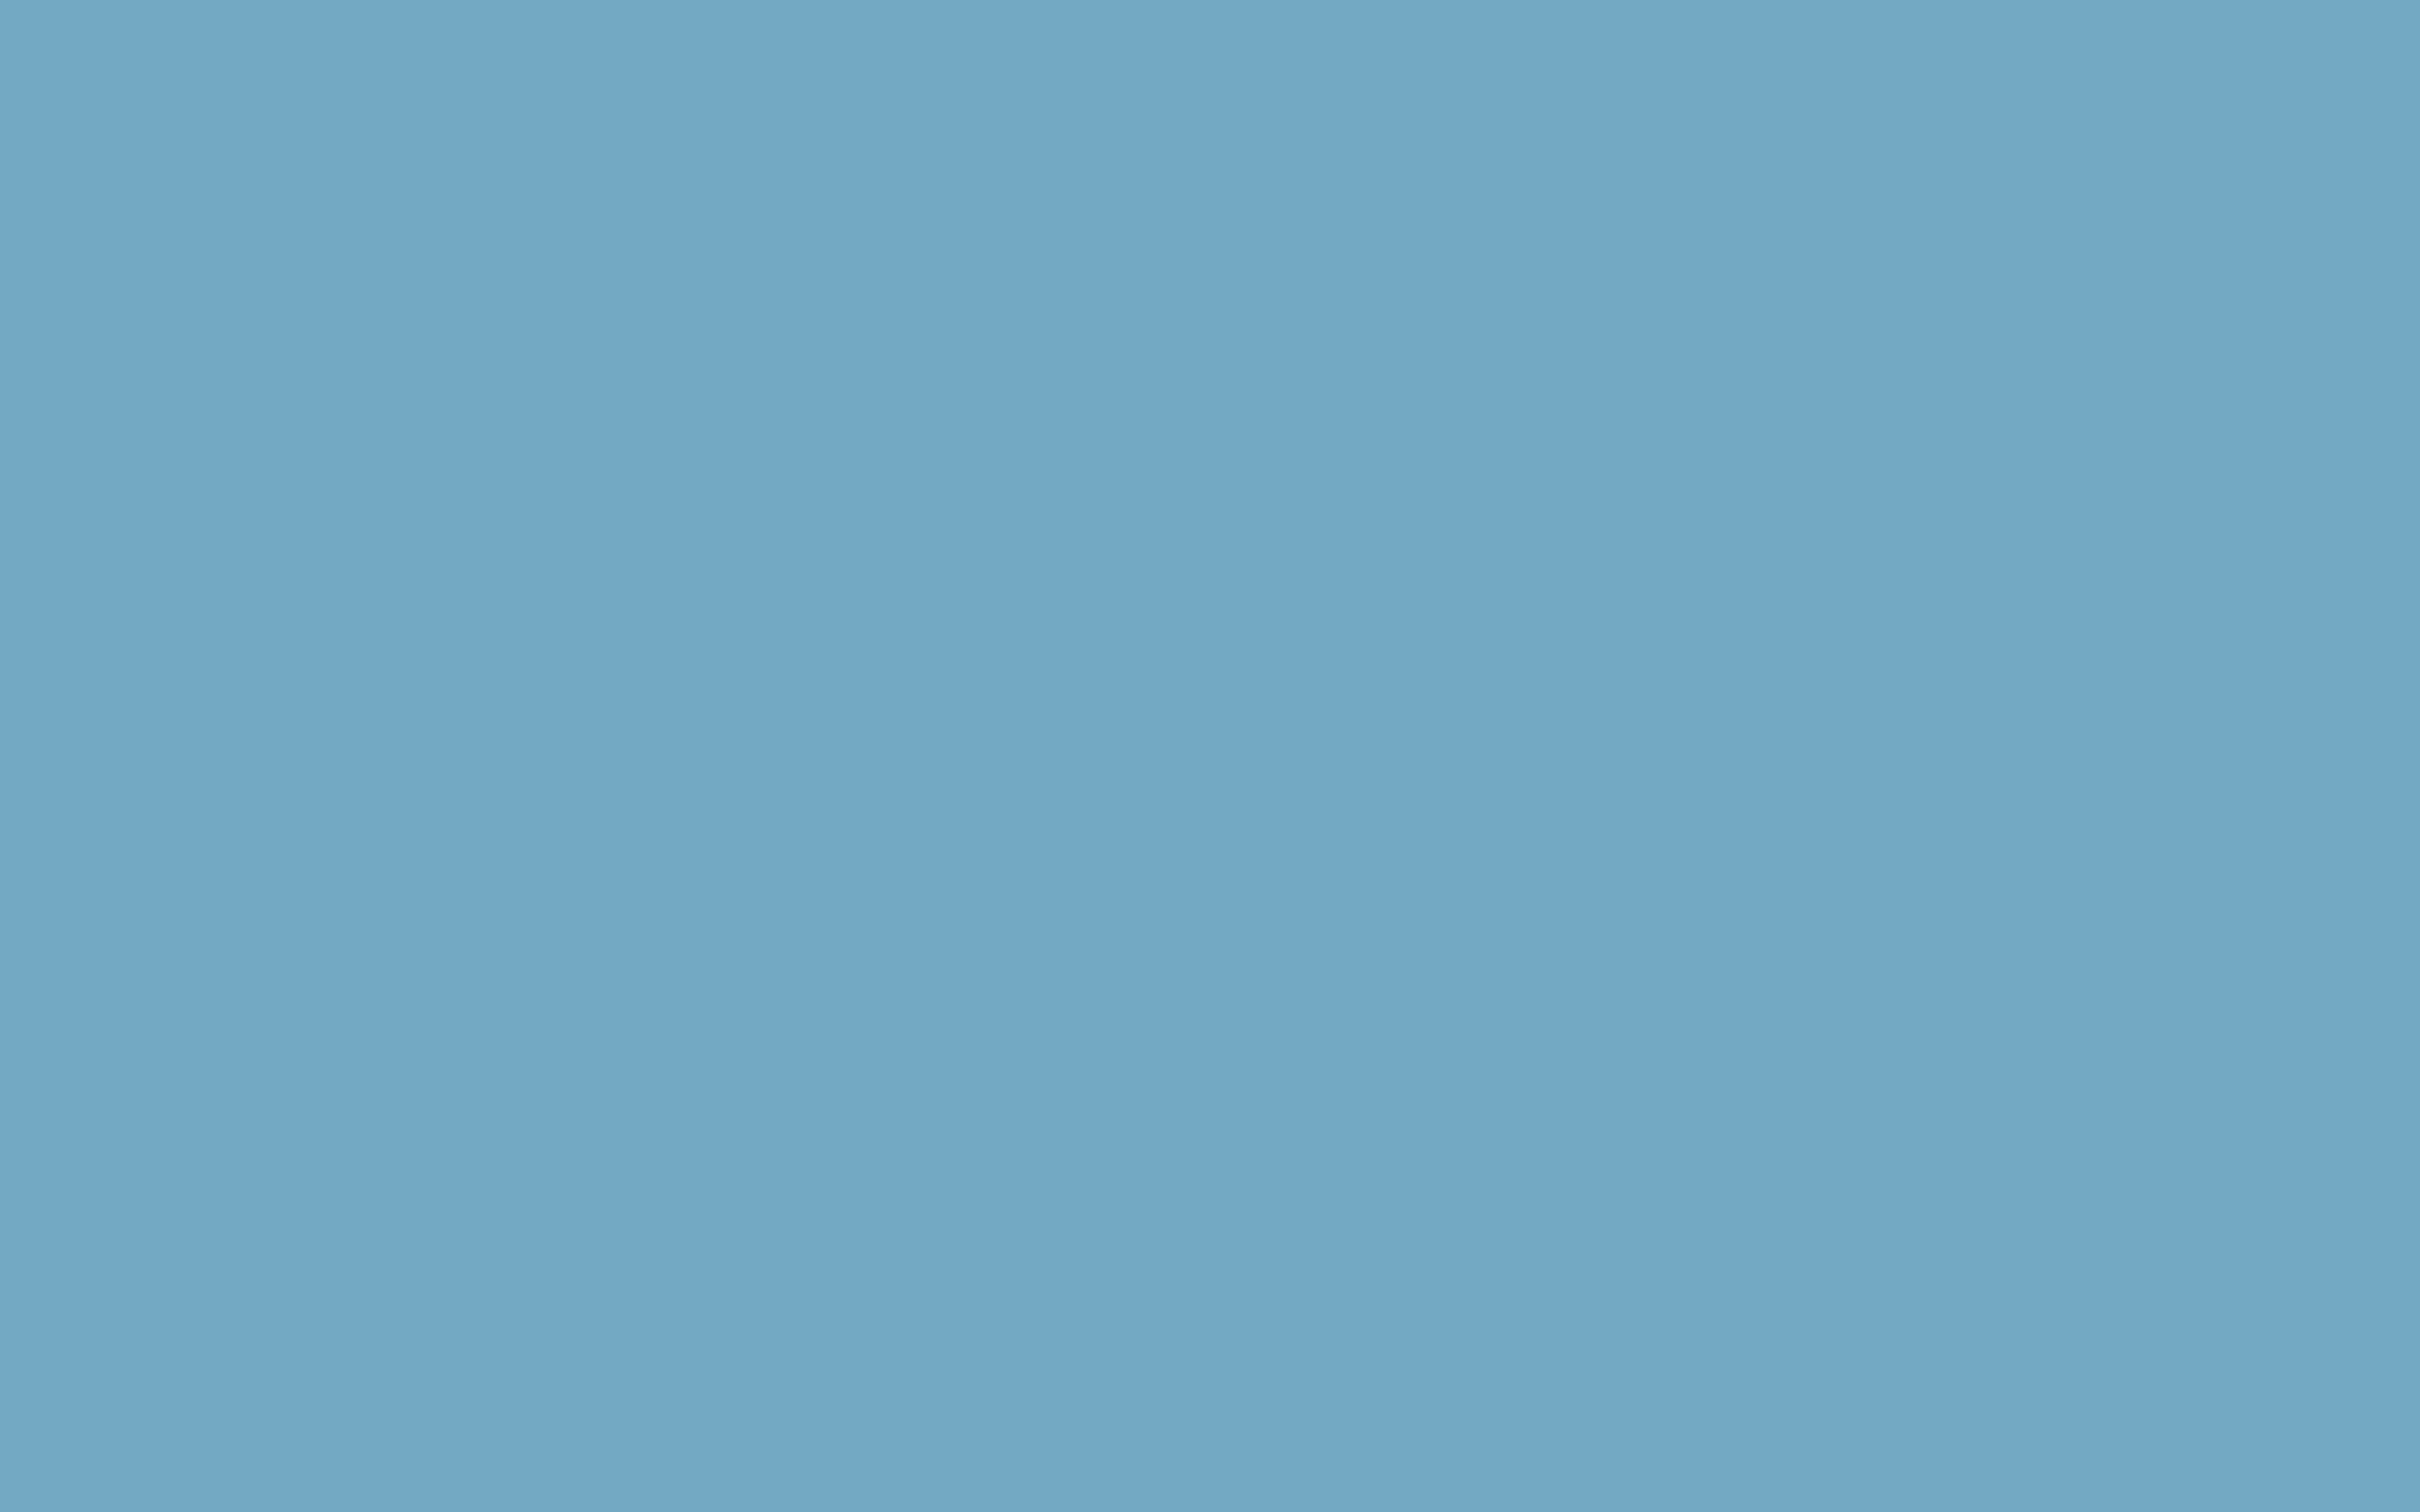 2560x1600 Moonstone Blue Solid Color Background